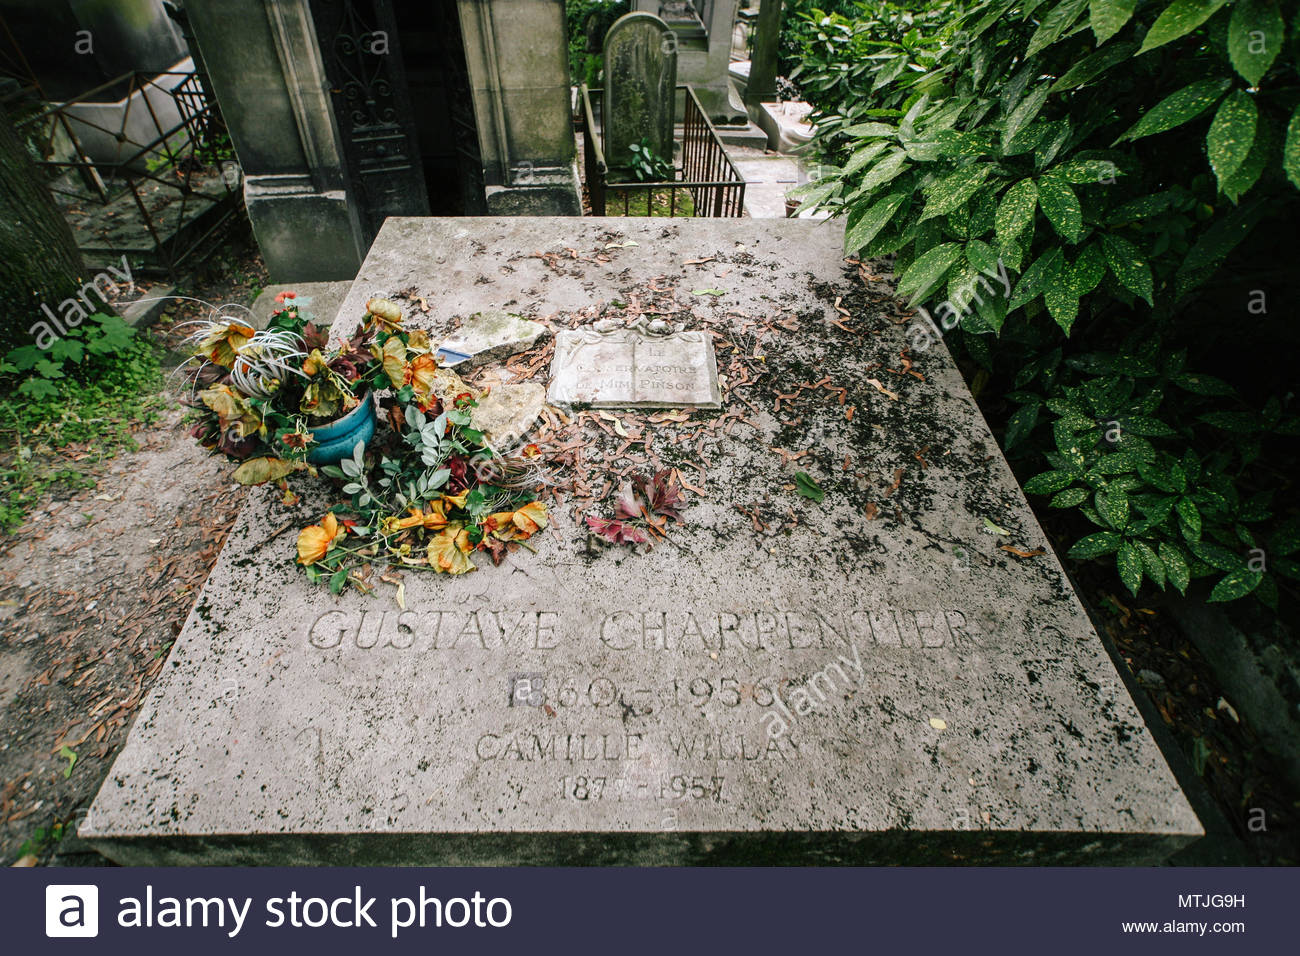 french posers grave gustave charpentier at pere lachaise cemetery paris france MTJG9H